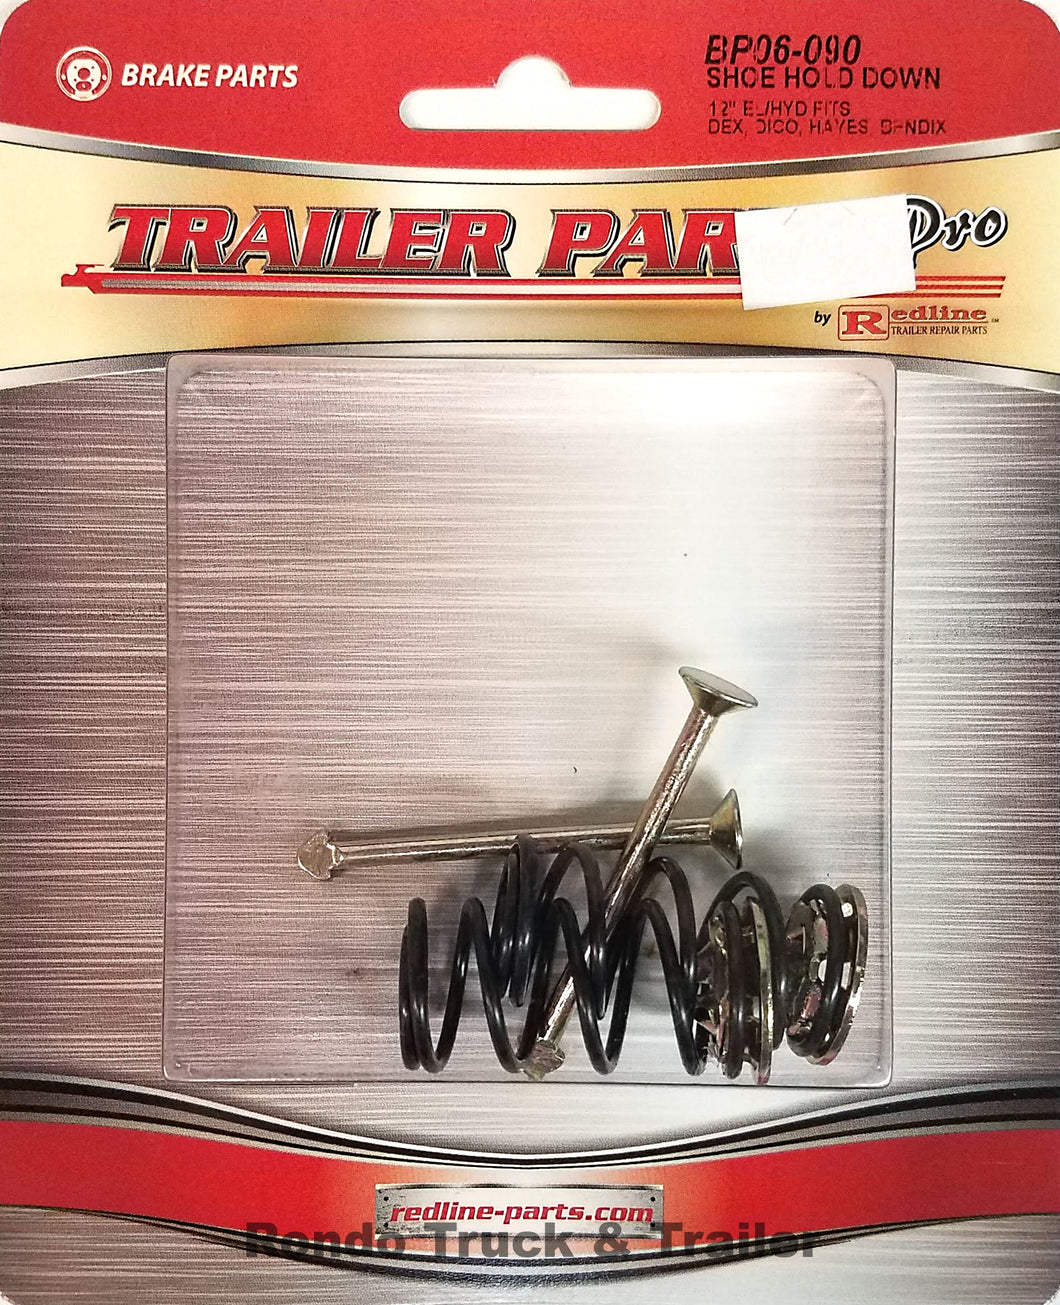 Redline Trailer Parts Brake Shoe Hold Down Springs for 12